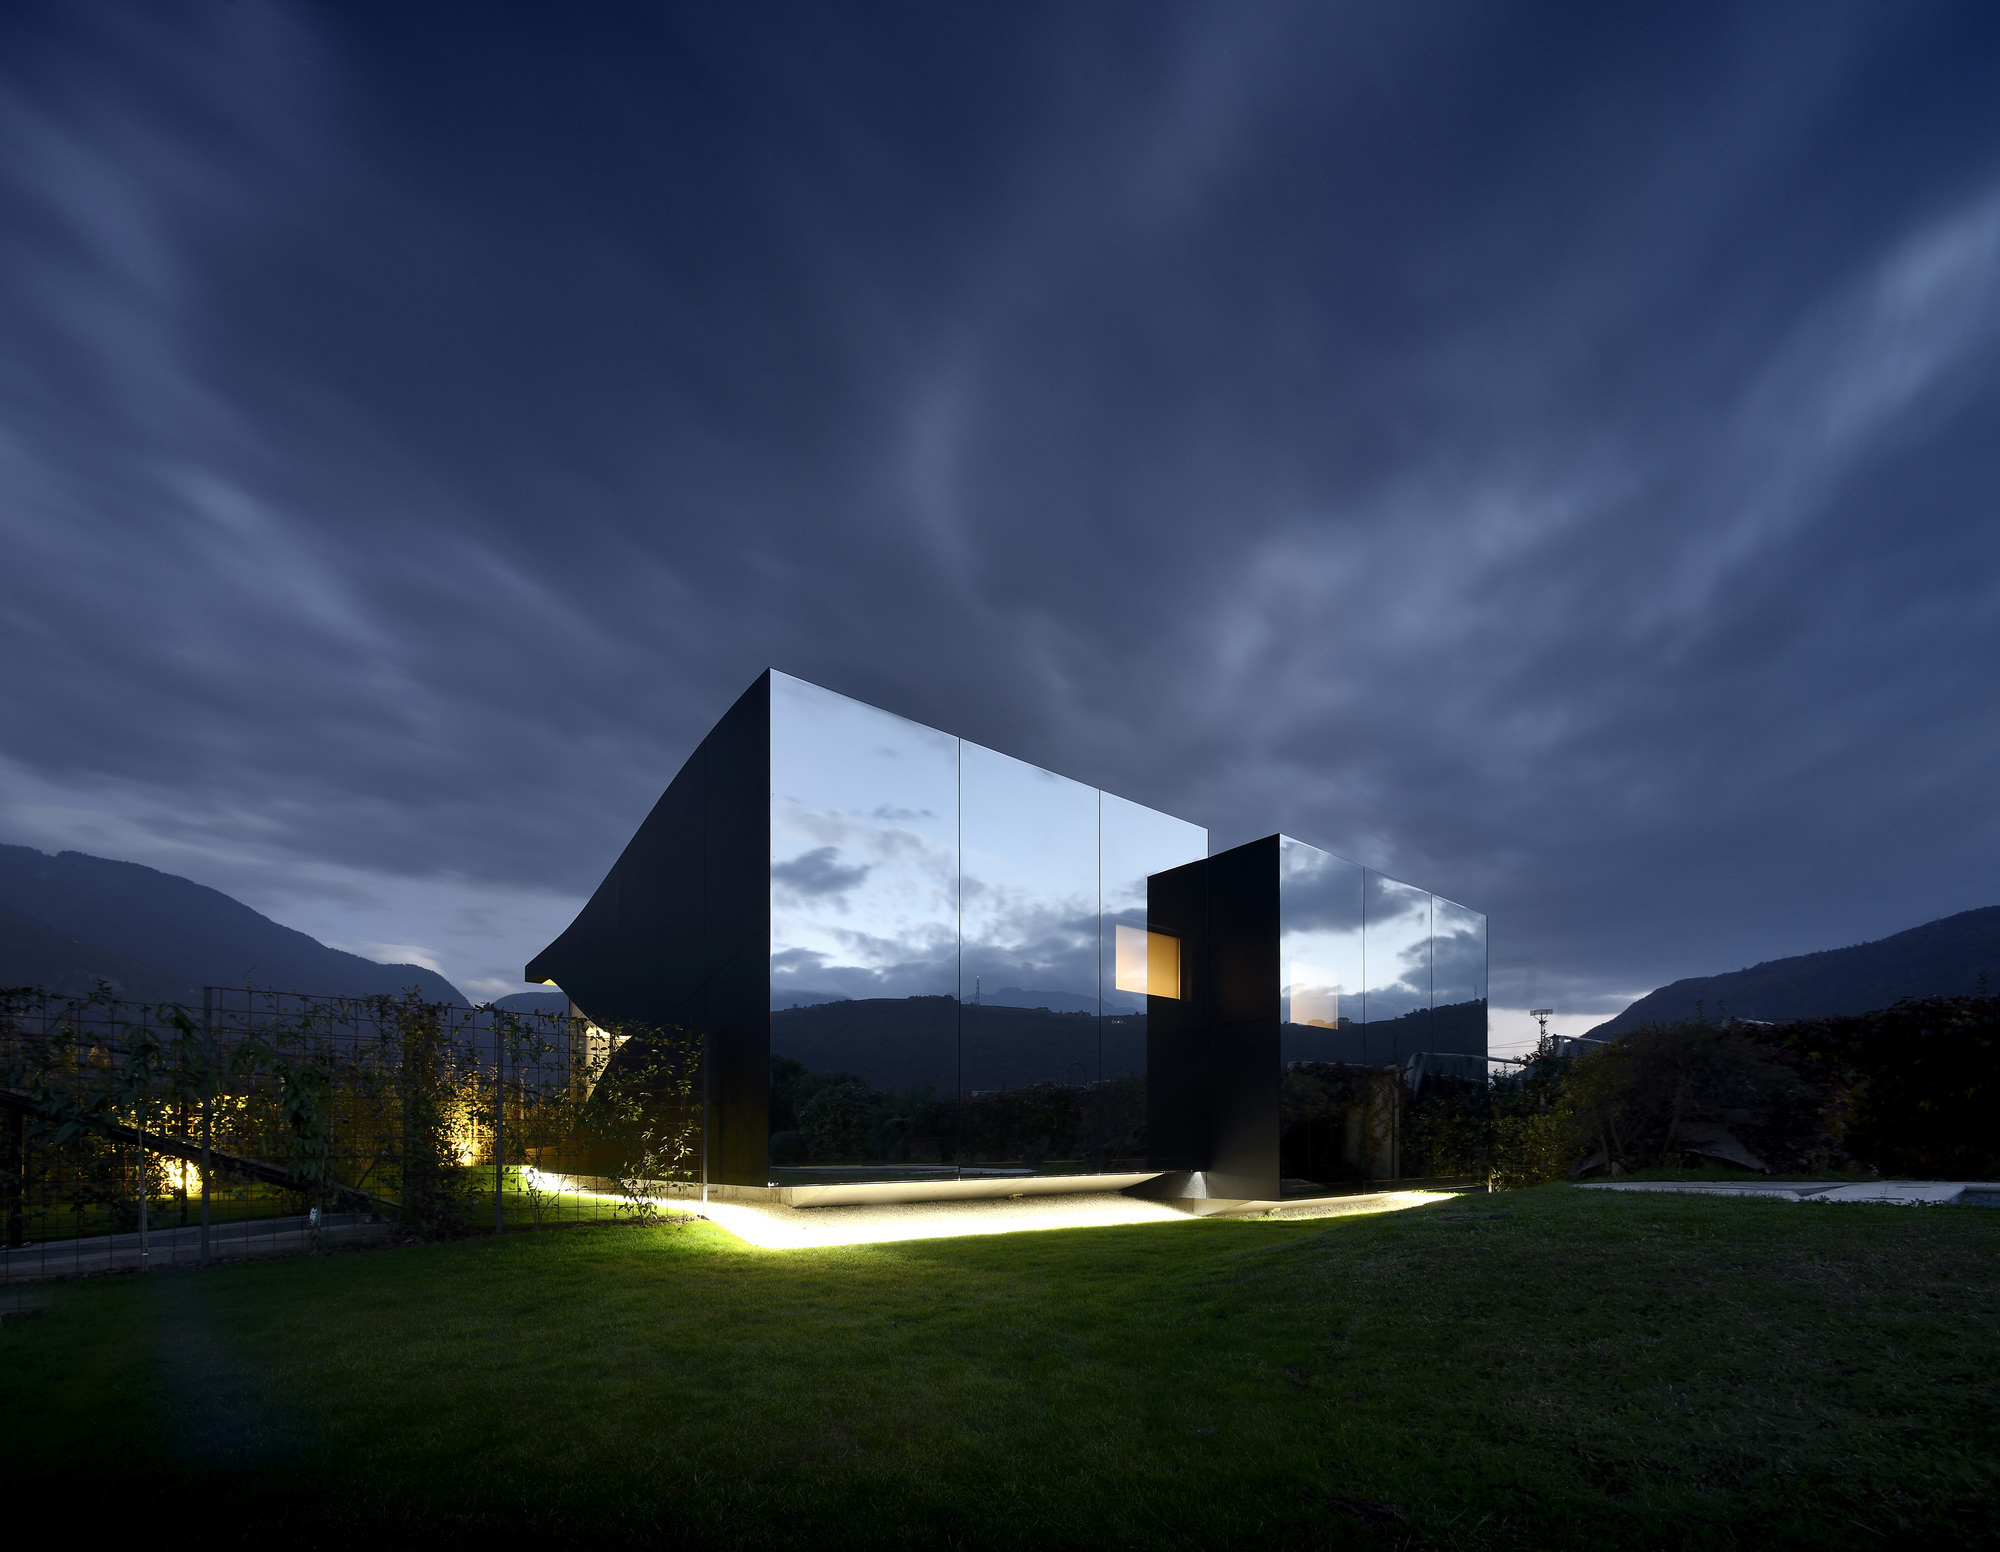 The Mirror Houses / Peter Pichler Architecture (4)